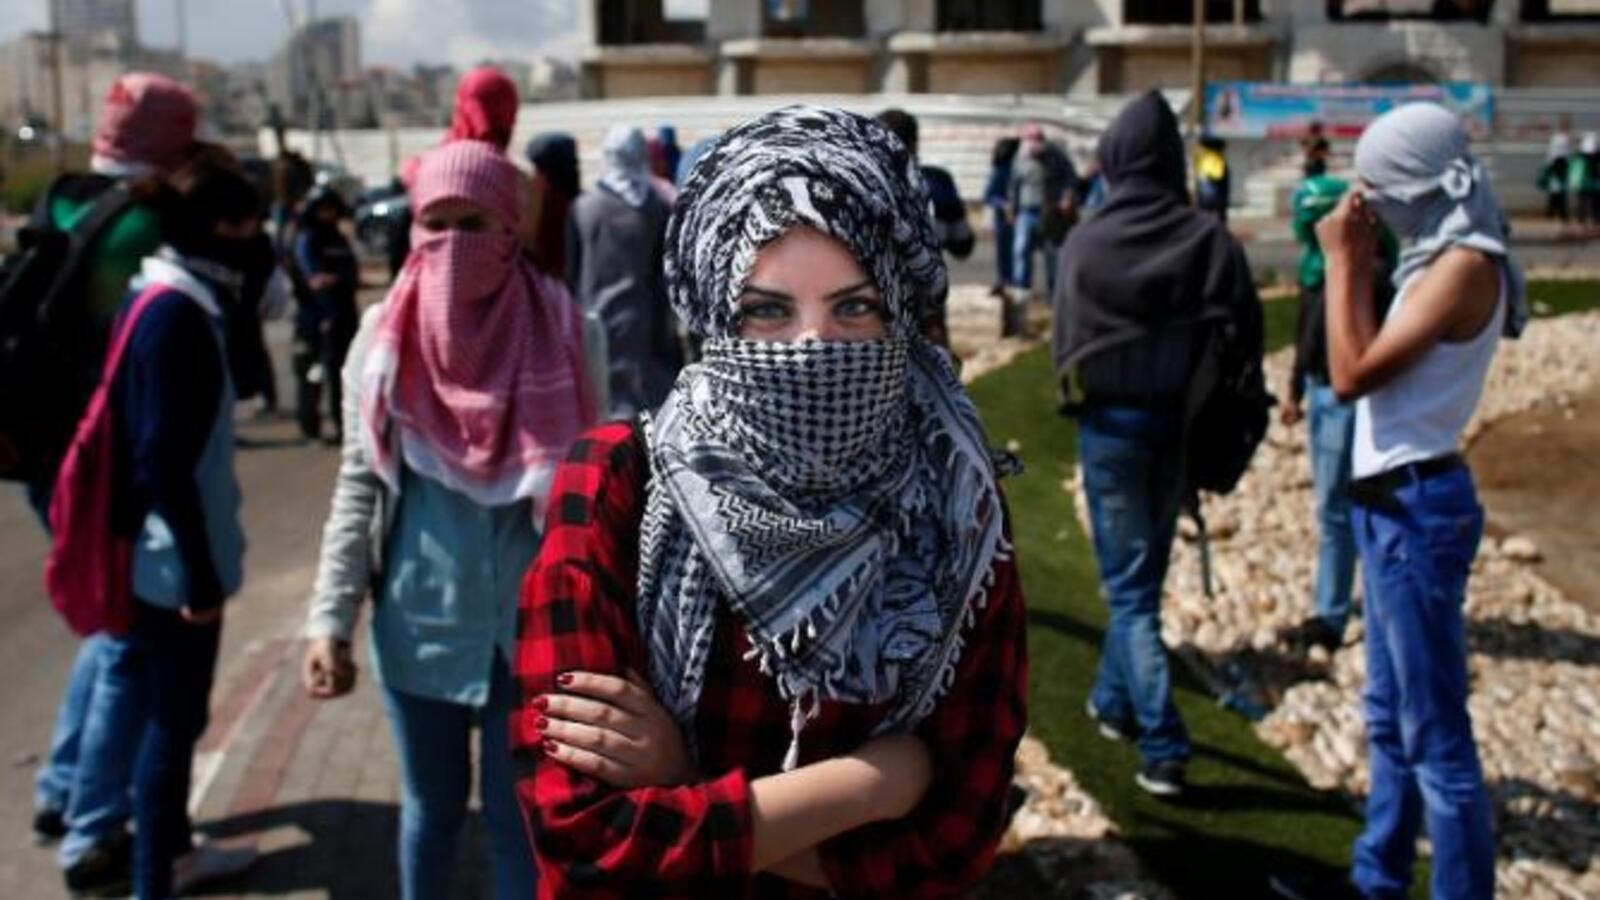 Palestinian are doubly affected by the Israeli occupation and domestic violence from partners as part of an ongoing culture of violence and oppression. (AFP/File)